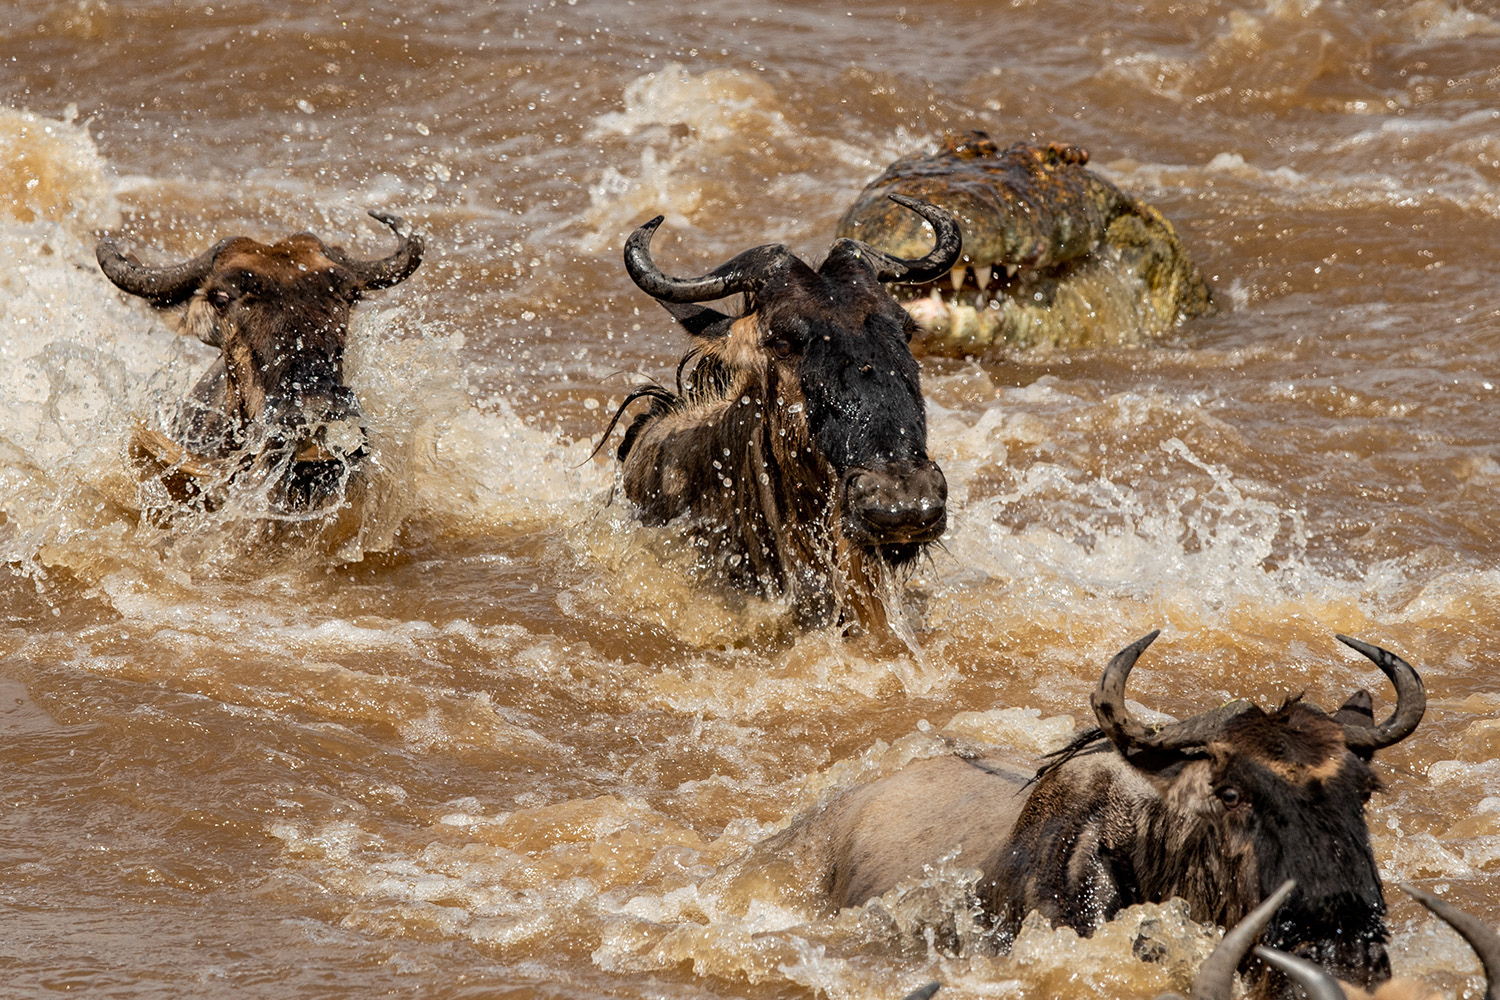 Crocodile attcking wildebeest in the great migration